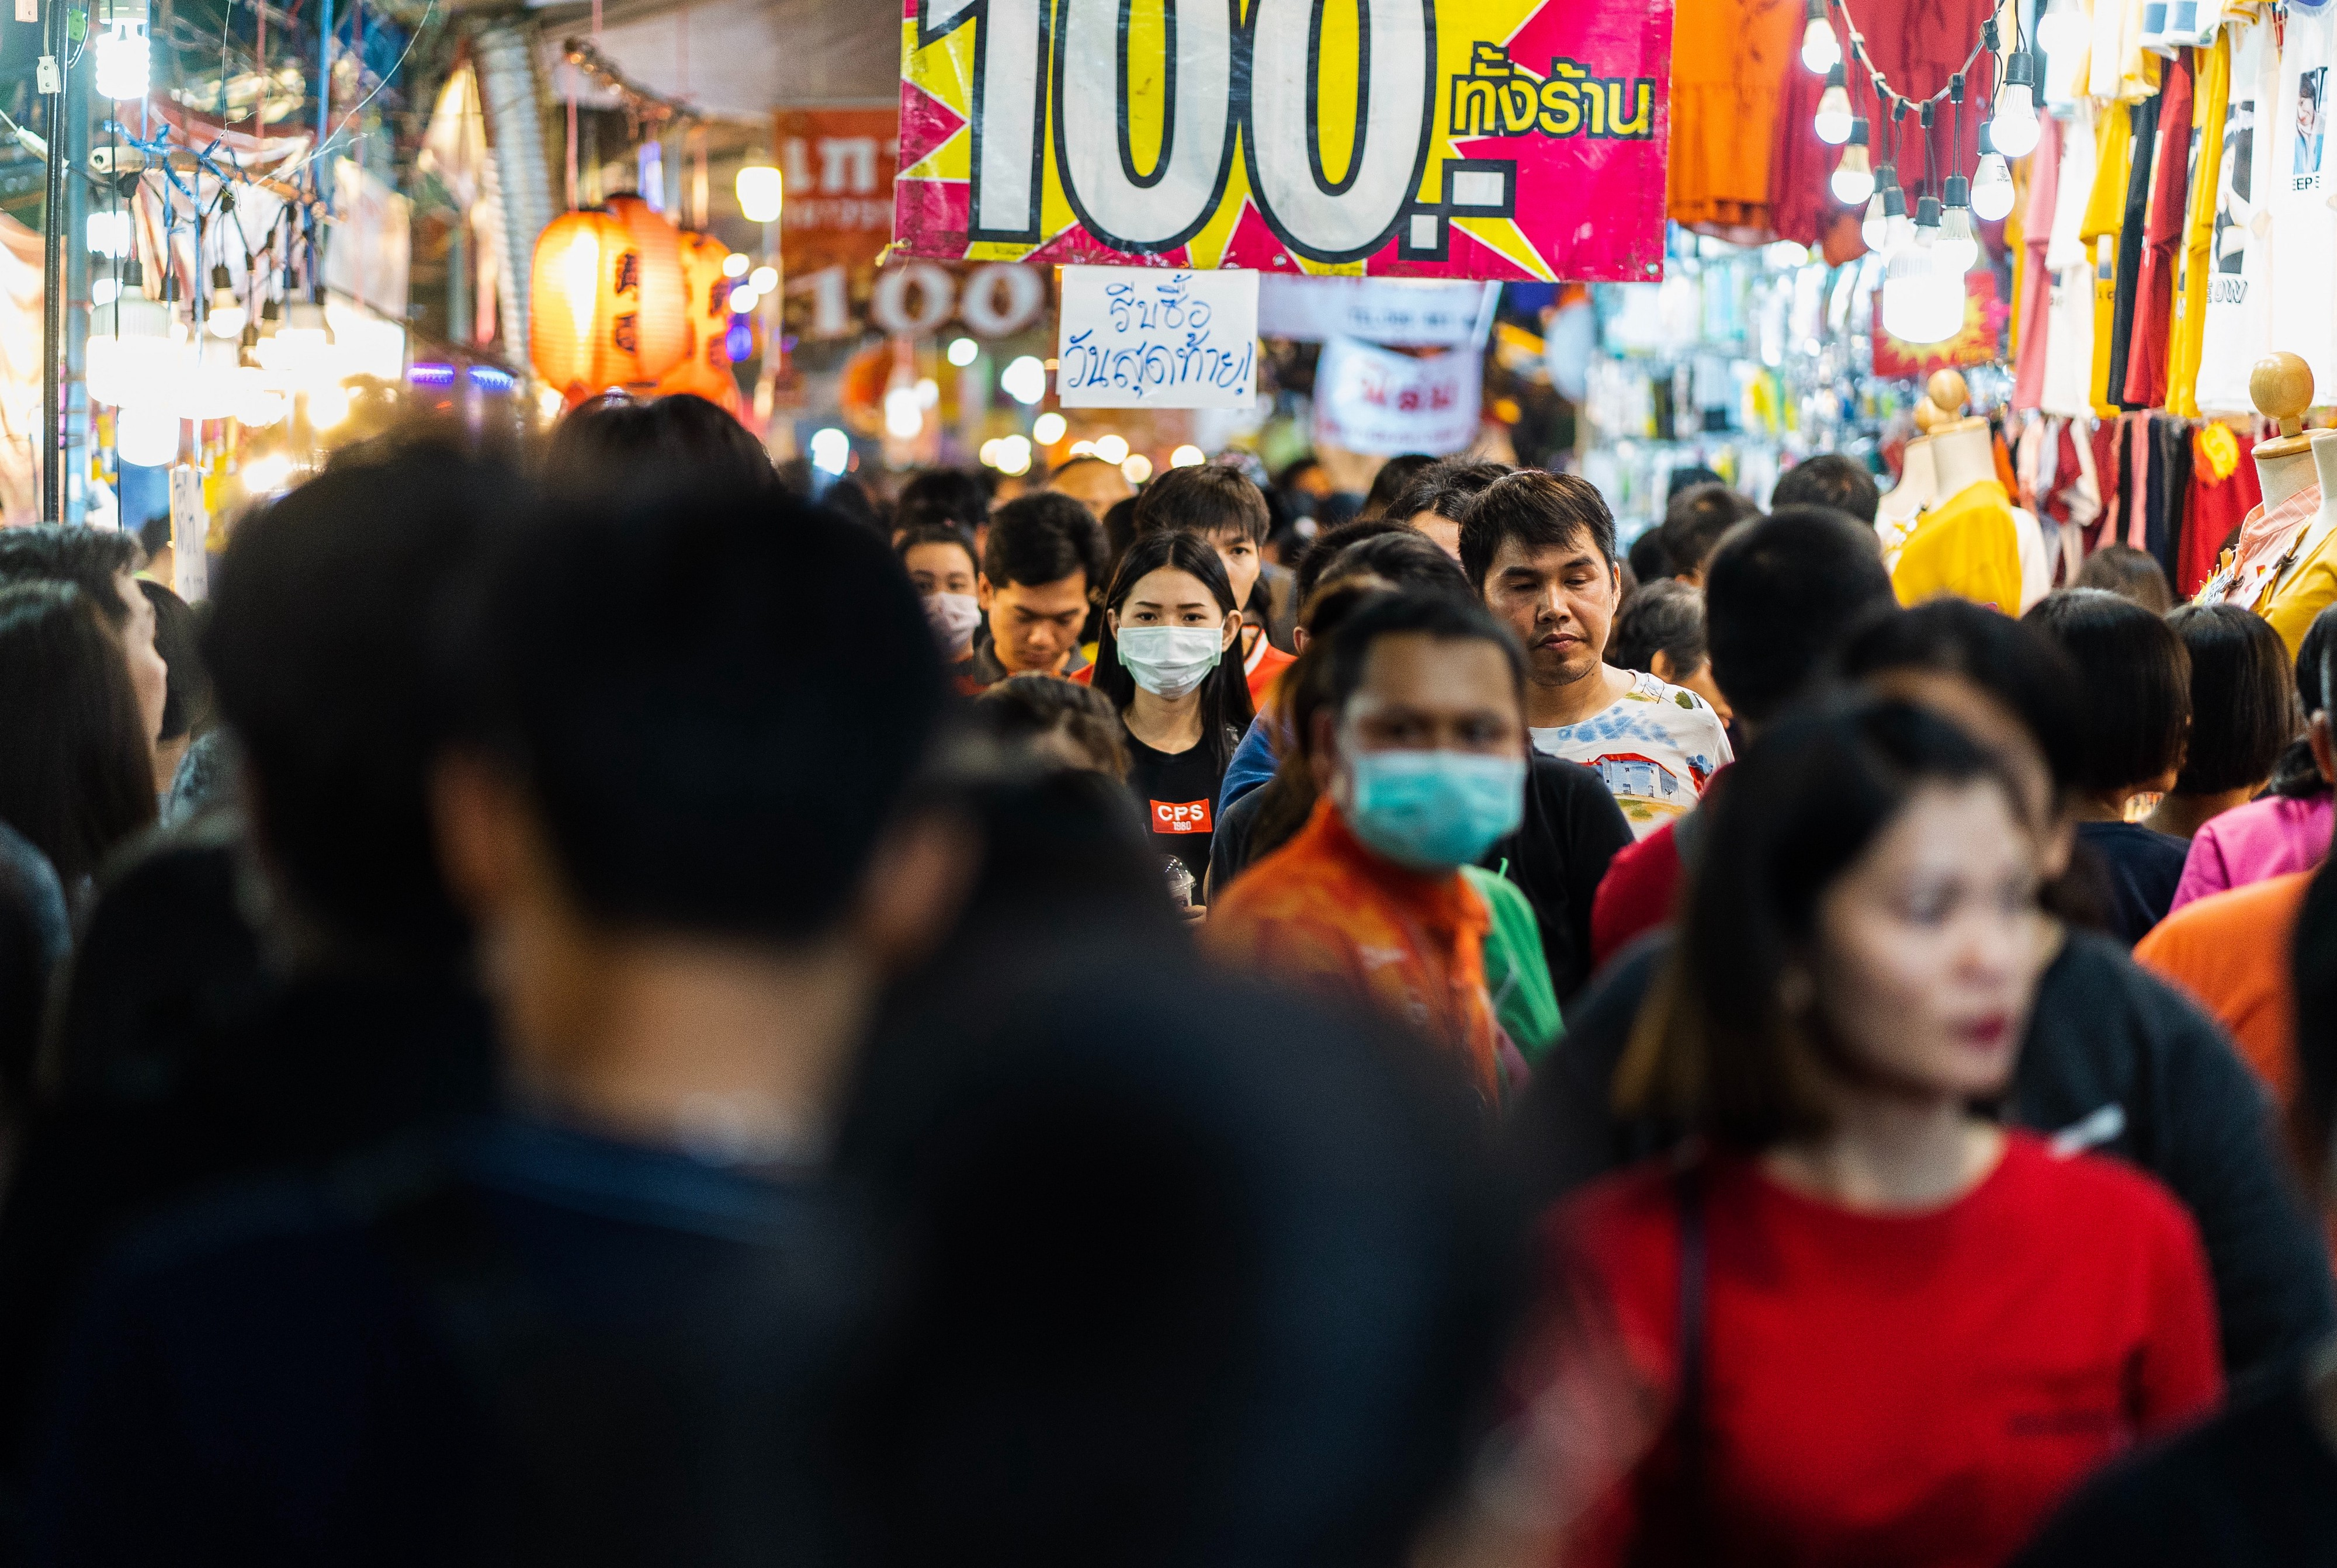 A crowd of people. Some wearing masks